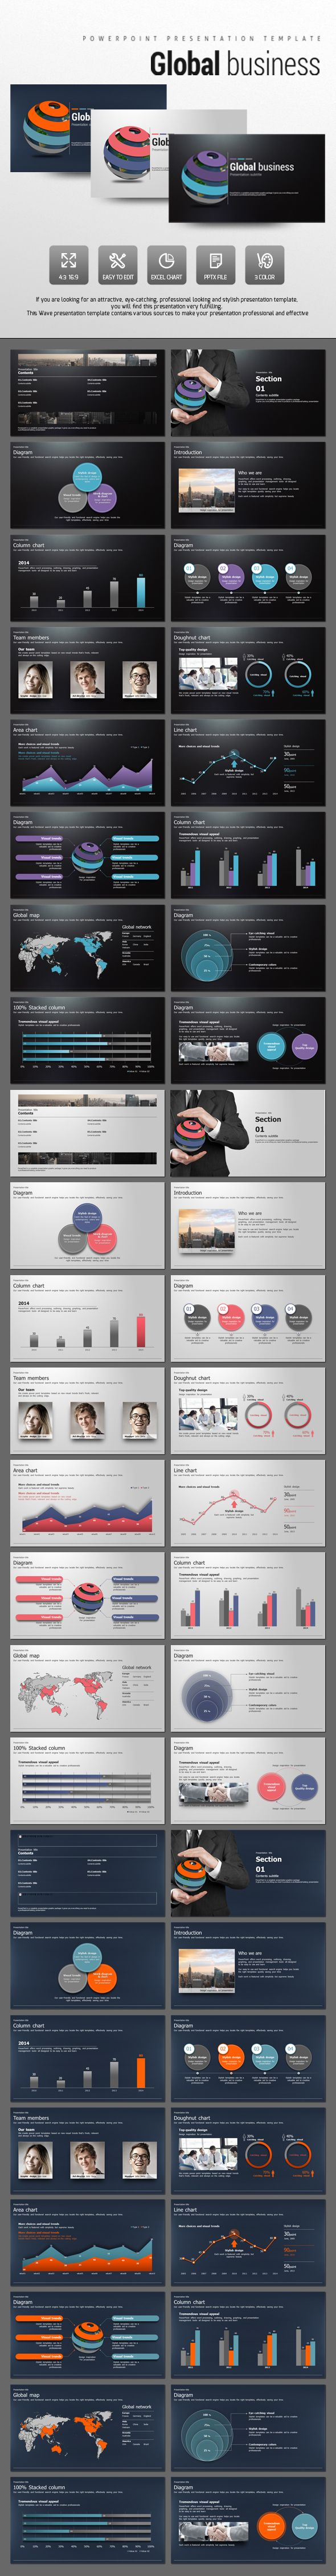 Global Business (PowerPoint Templates)